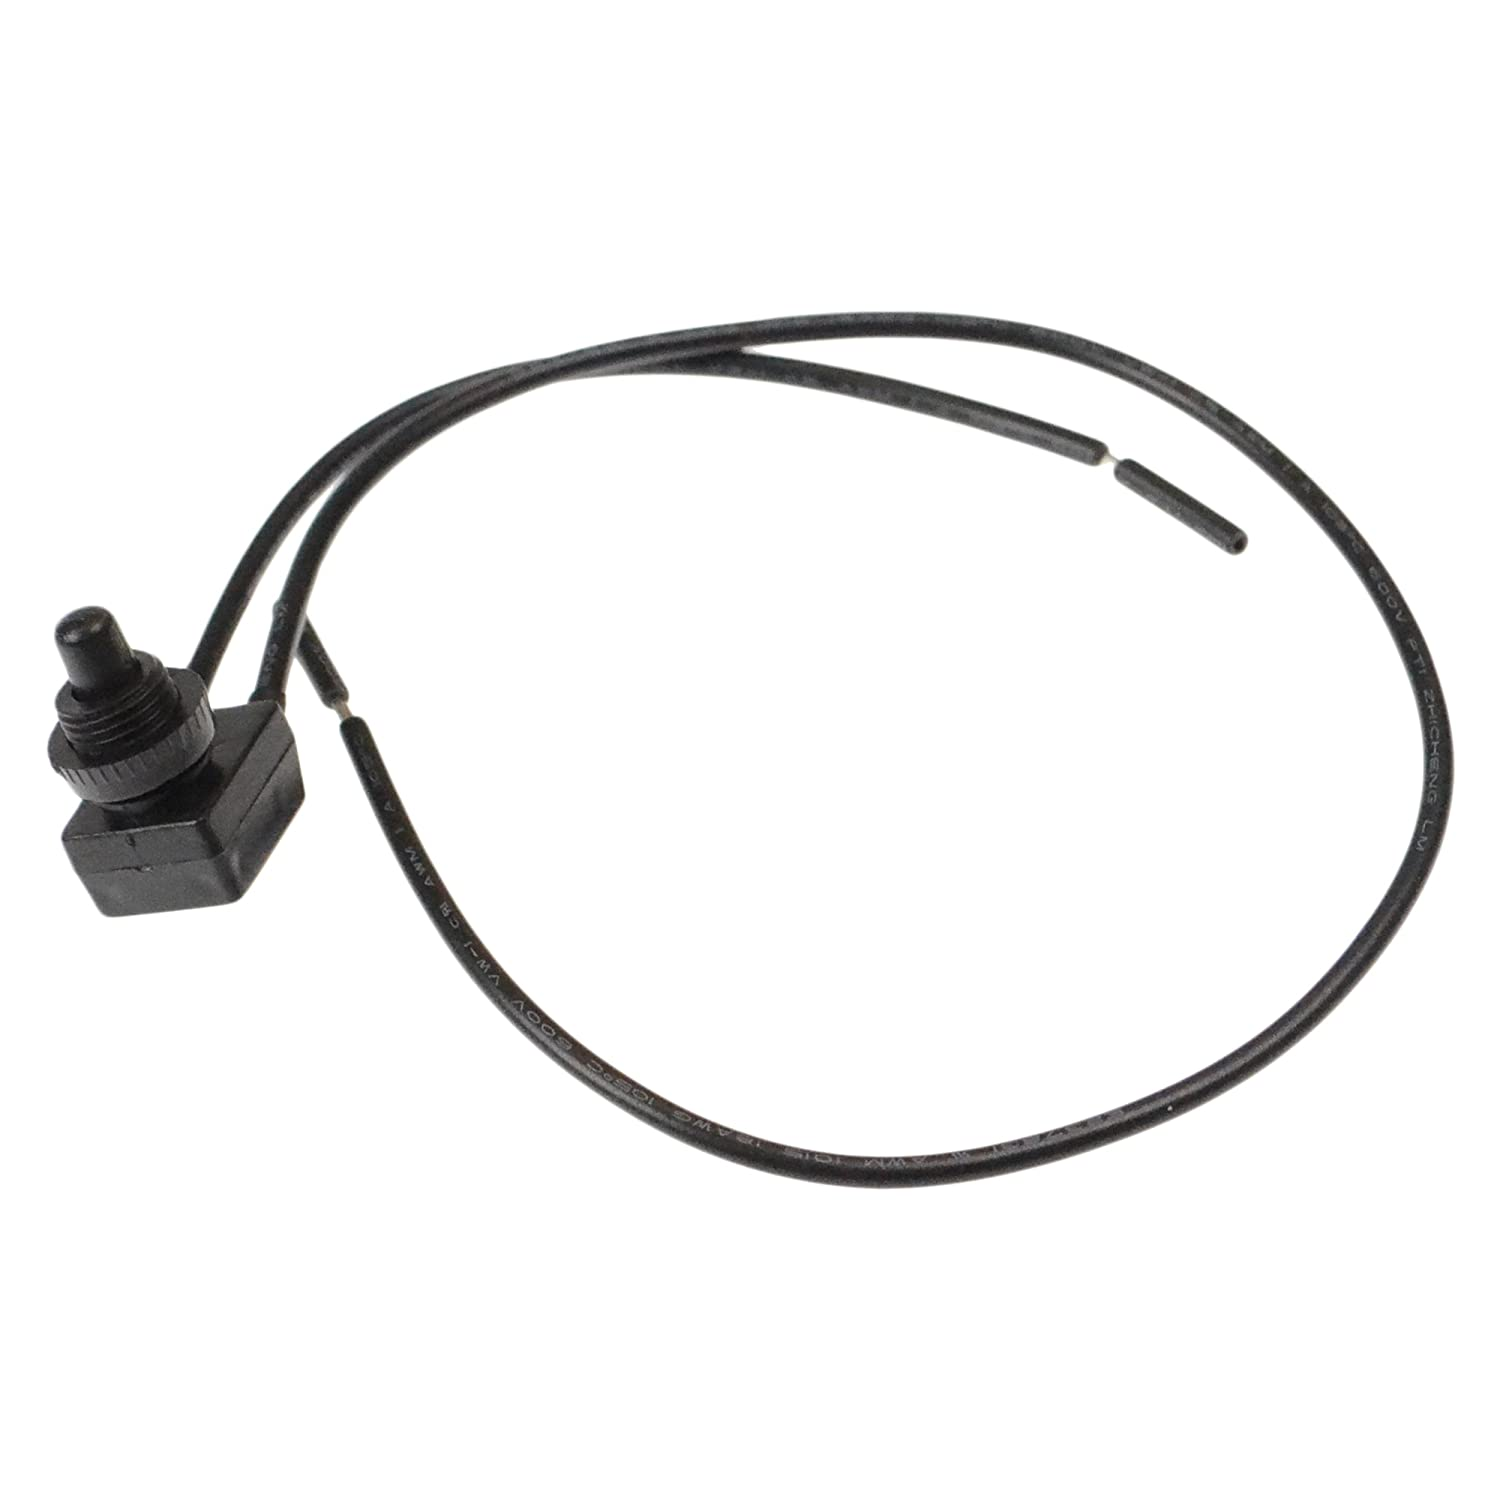 Heng's 27-0164 Roof Vent Push Button Switch with Wires - Black Heng' s Industries